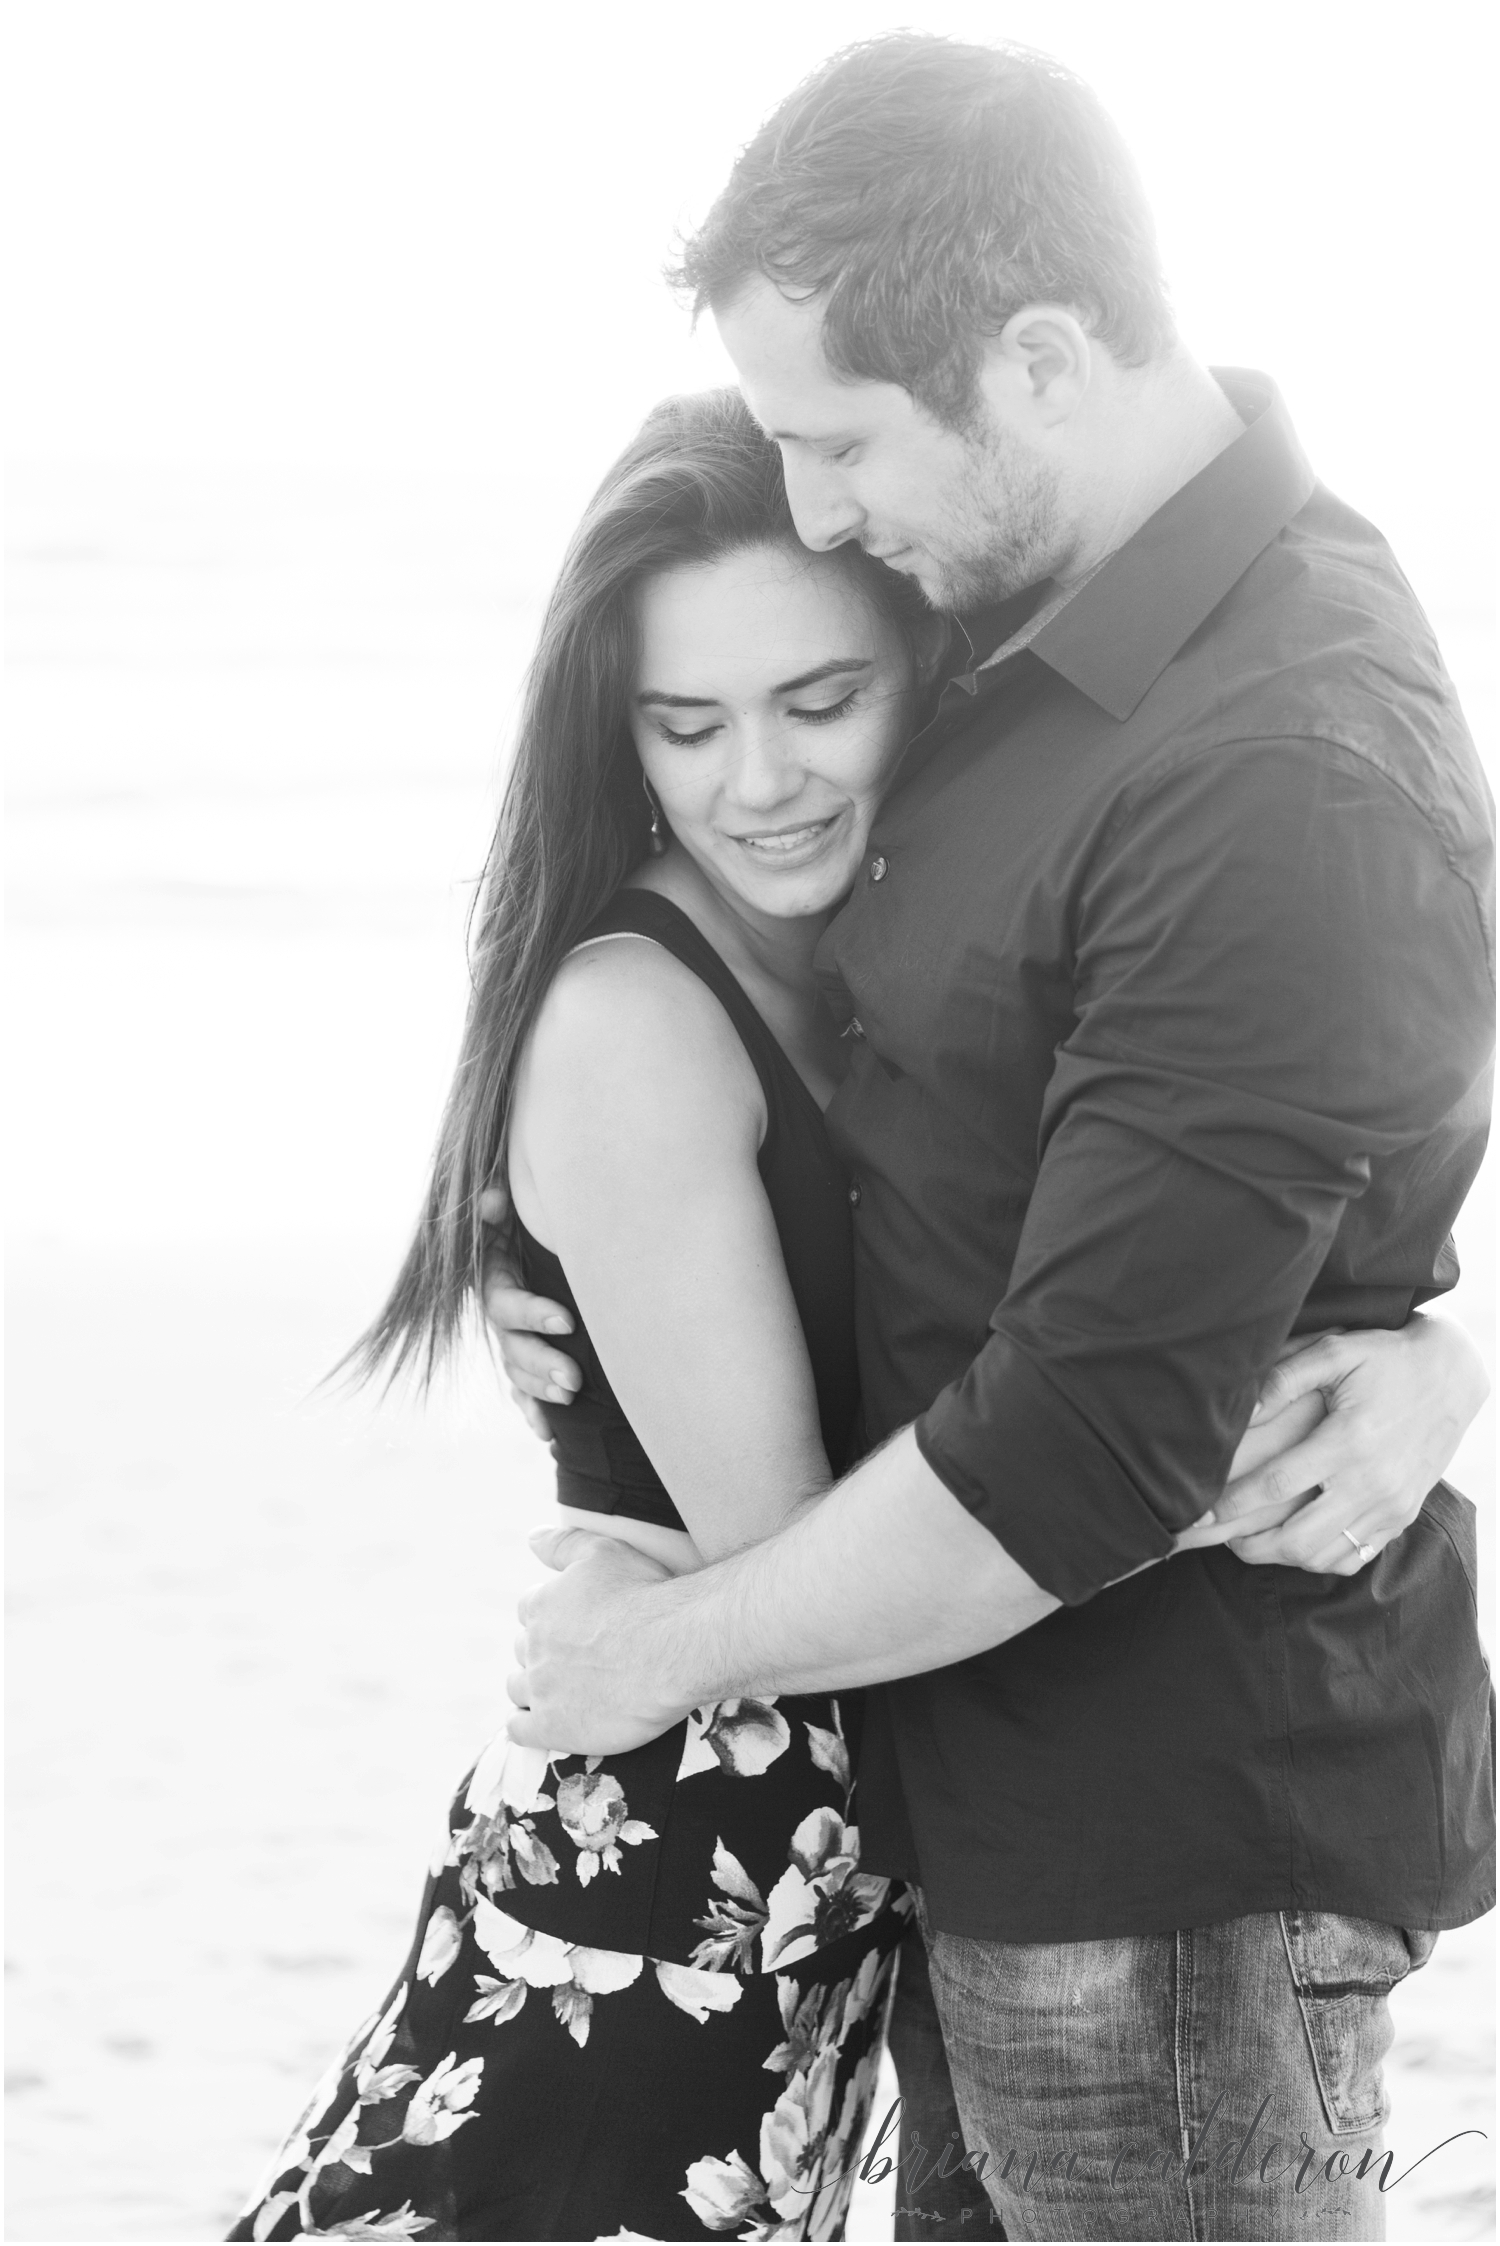 LA Beach Engagement Photos by Briana Calderon Photography_0821.jpg